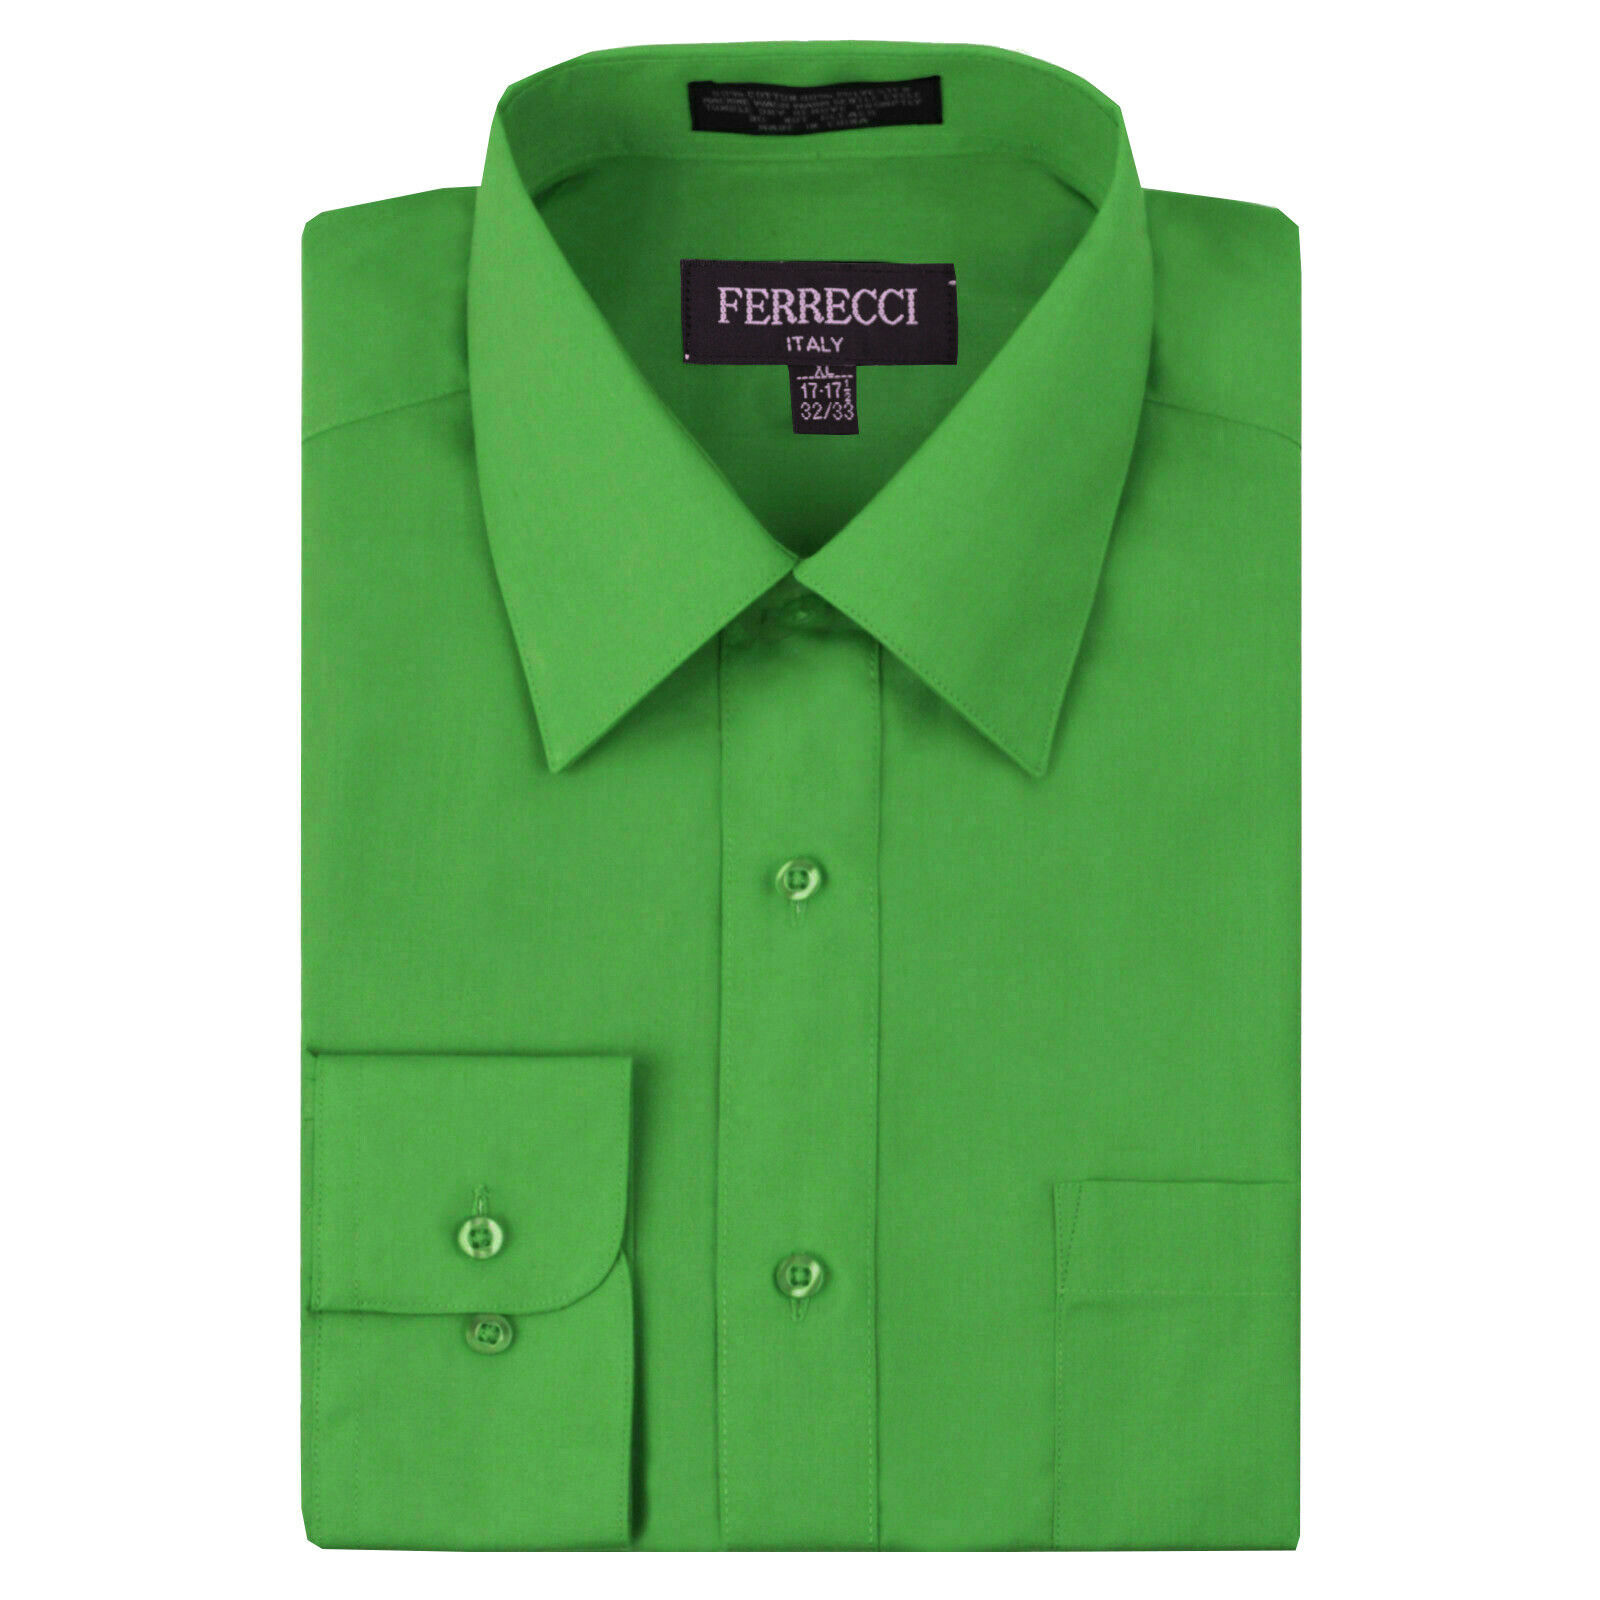 Ferrecci Italy Men's Green Dress Shirt Long Sleeve Slim Fit w/ Defect - XL